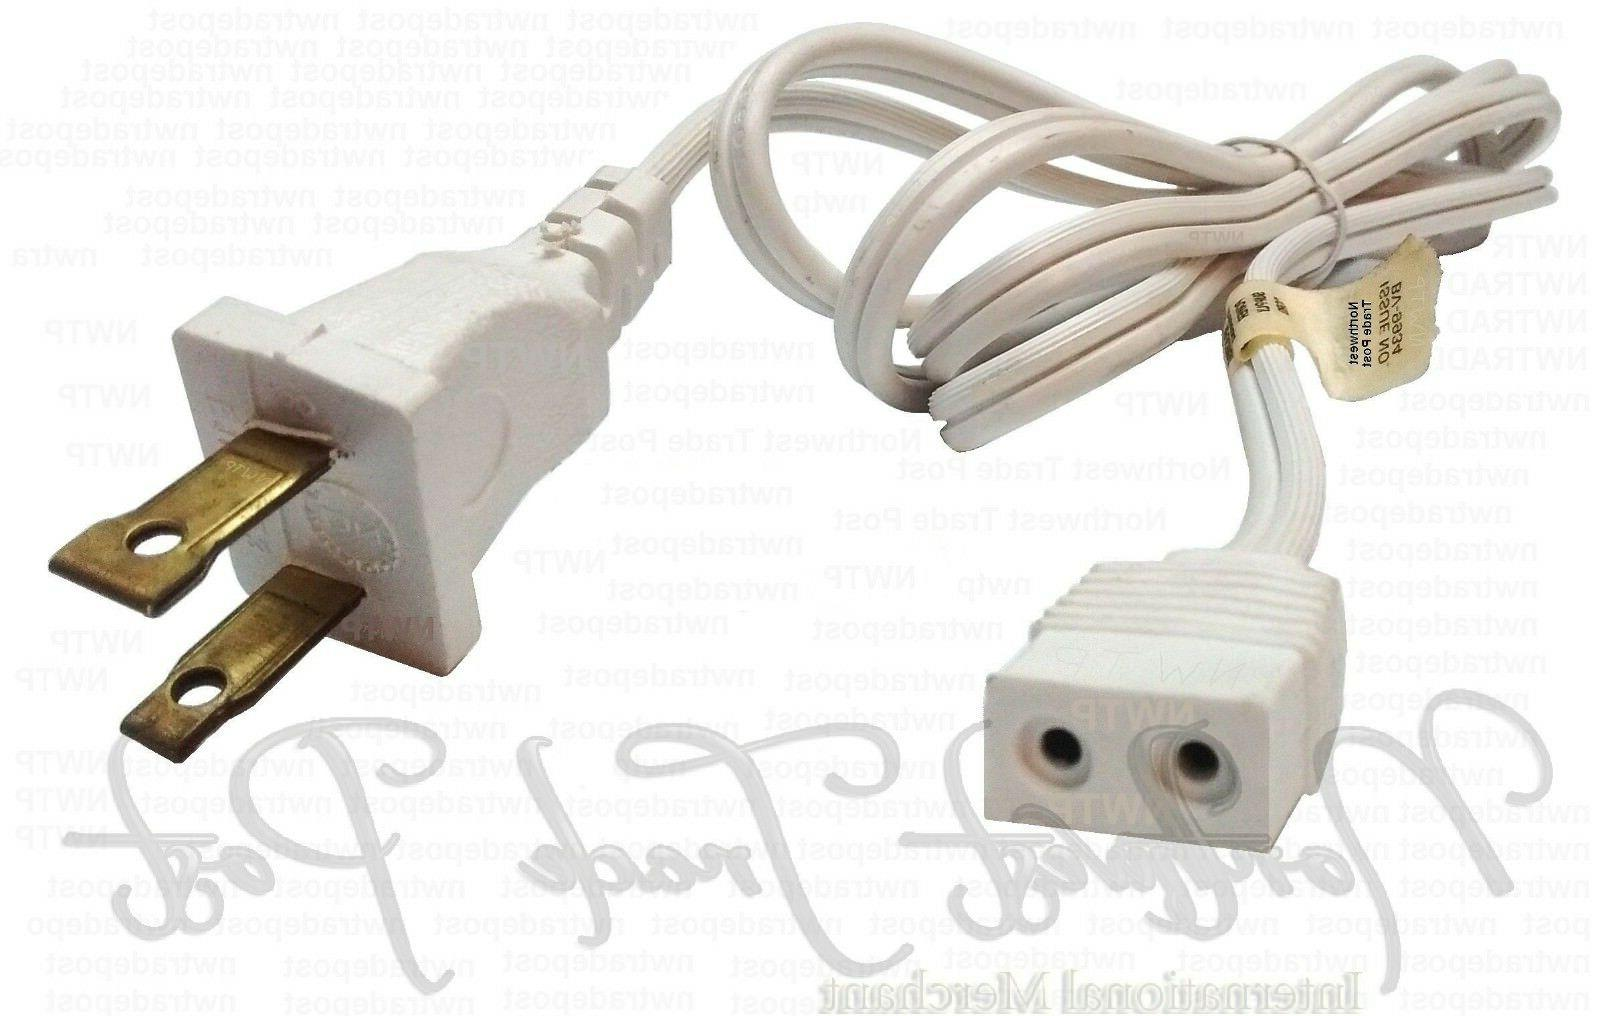 replacement power cord for crock pot slow